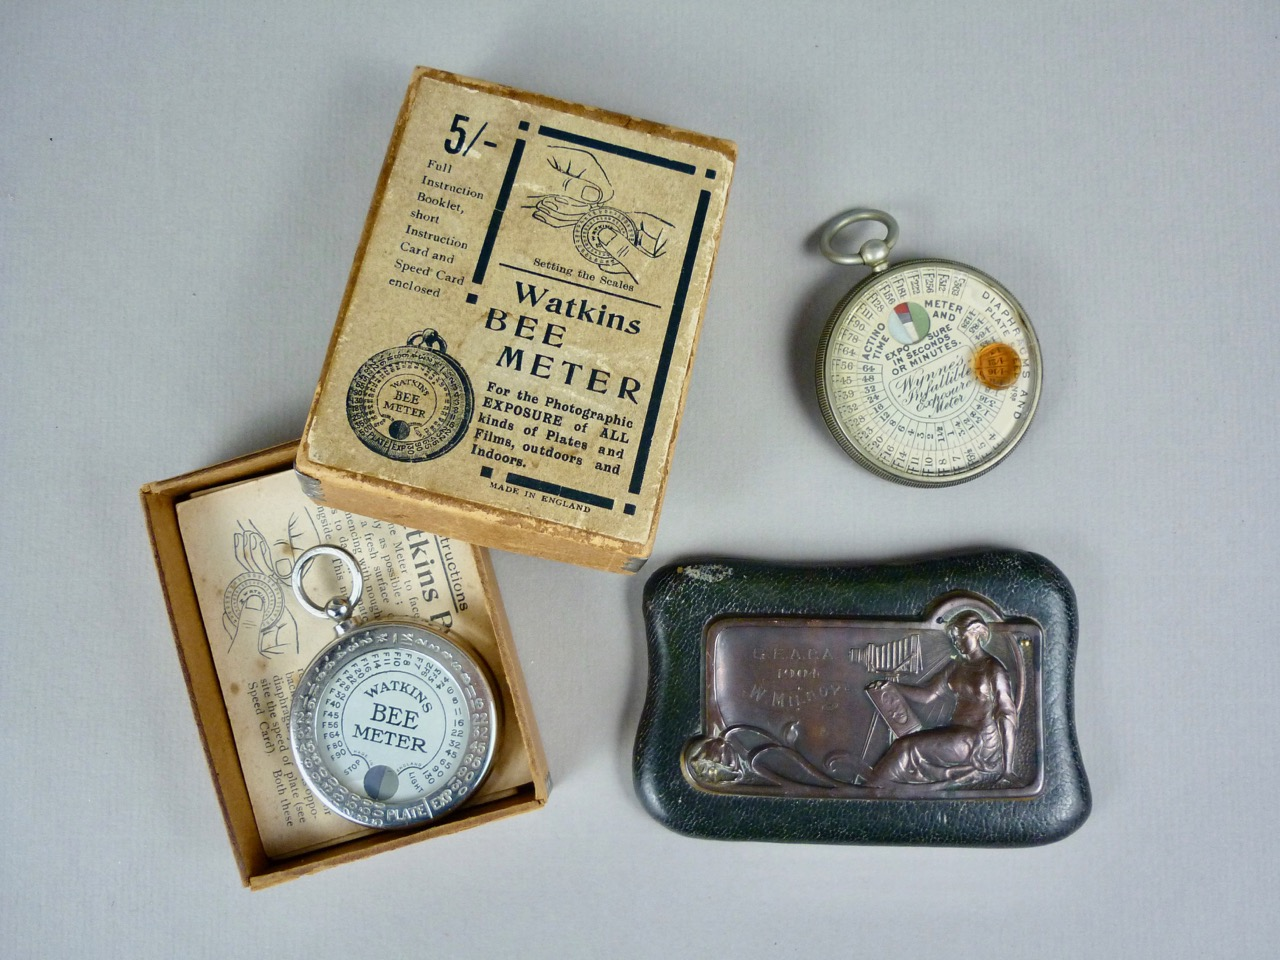 Lot 21 - [Photography / Camera] An Edwardian photographic association paperweight, leather covered and